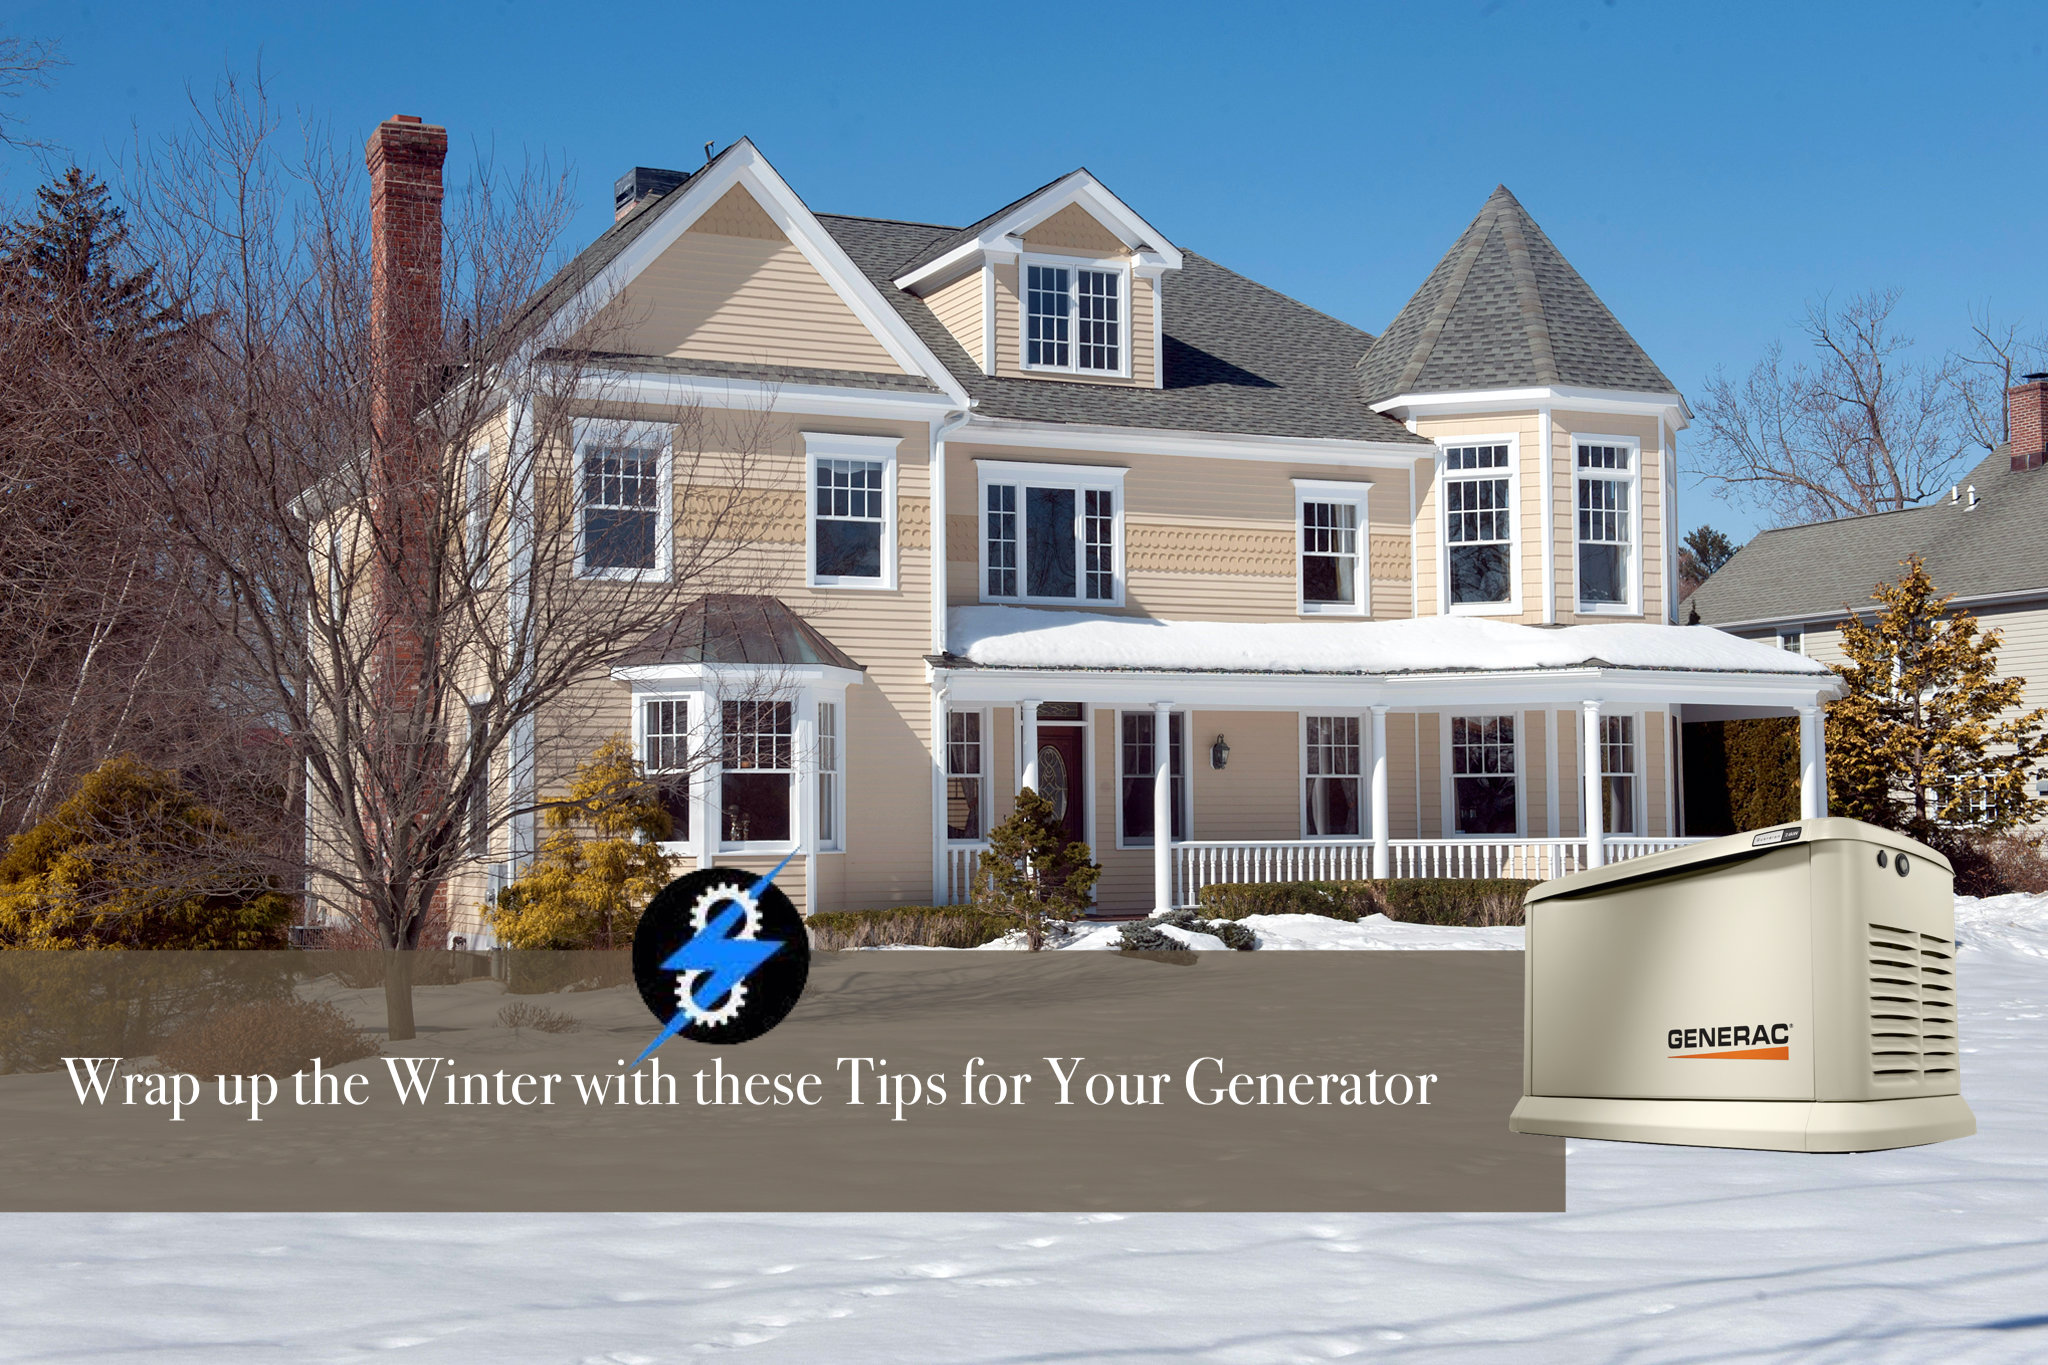 winter tips for your generator